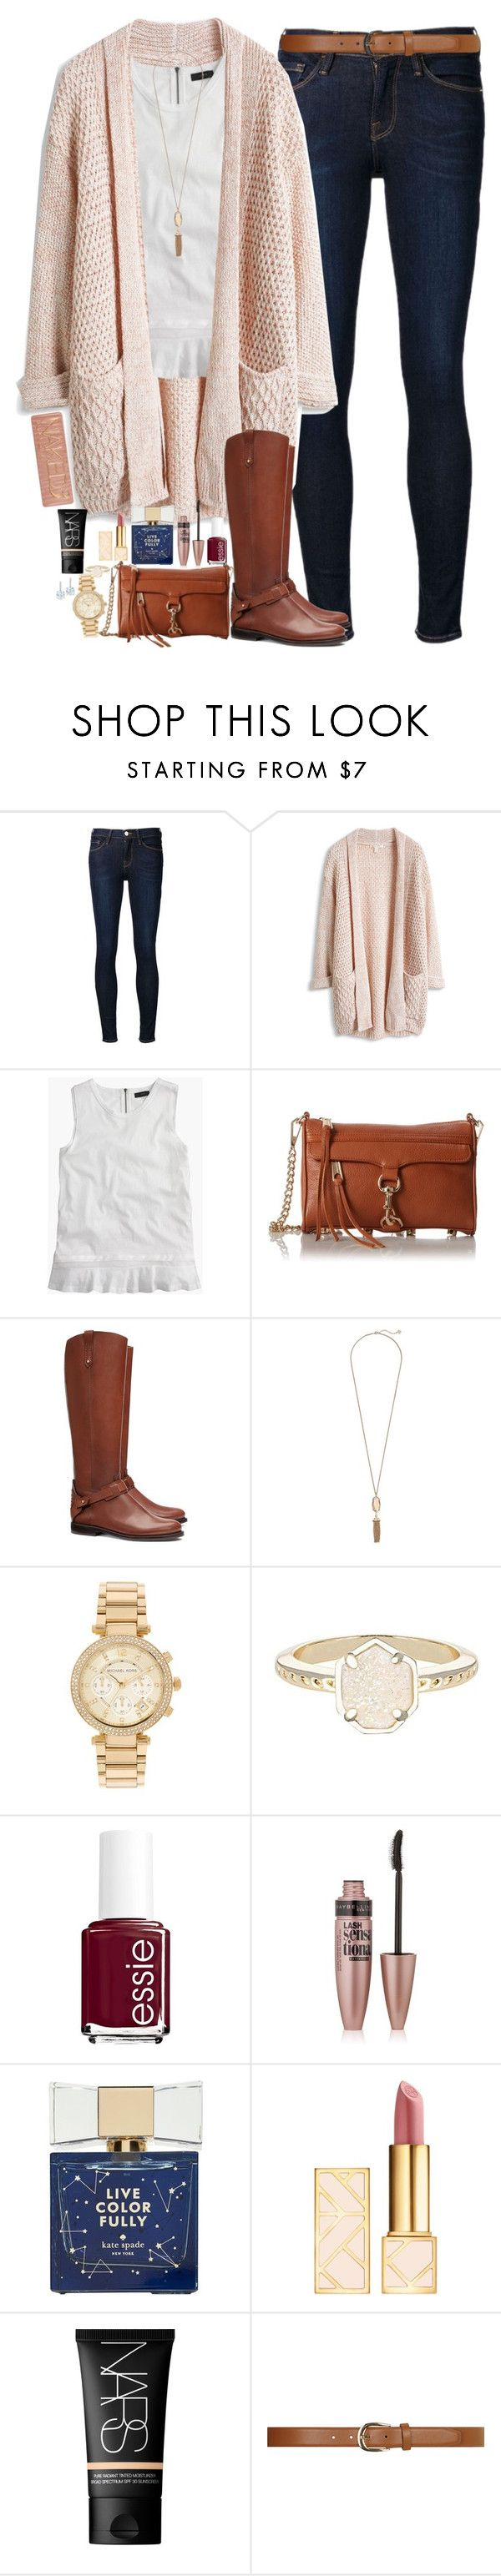 """Comment To Be On My Tag List!"" by teamboby ❤ liked on Polyvore featuring Frame Denim, J.Crew, Rebecca Minkoff, Tory Burch, Kendra Scott, Michael Kors, Essie, Maybelline, Kate Spade and Urban Decay"